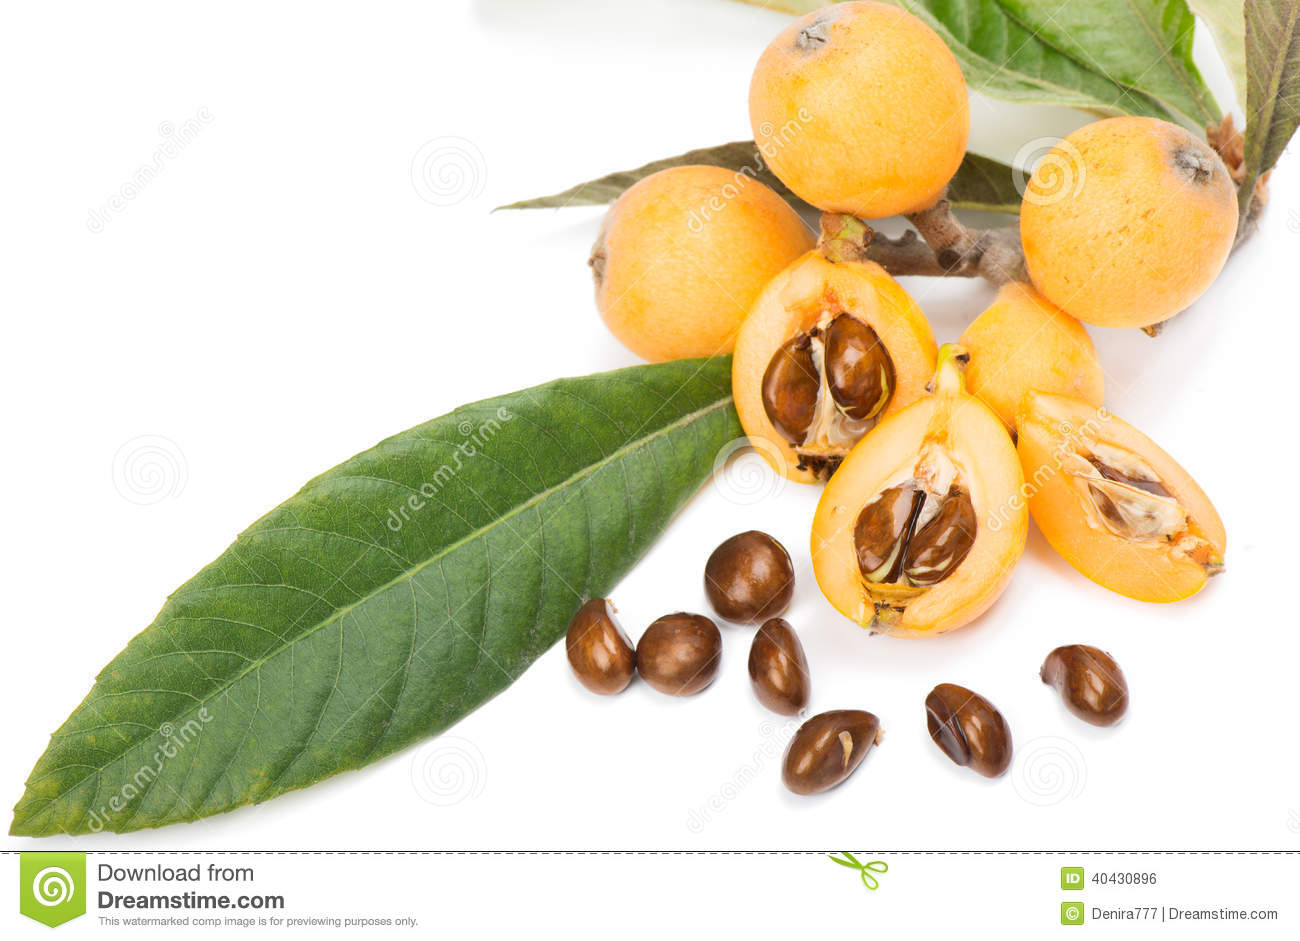 Loquat Fruit (Eriobotrya Japonica L.) Stock Photo.